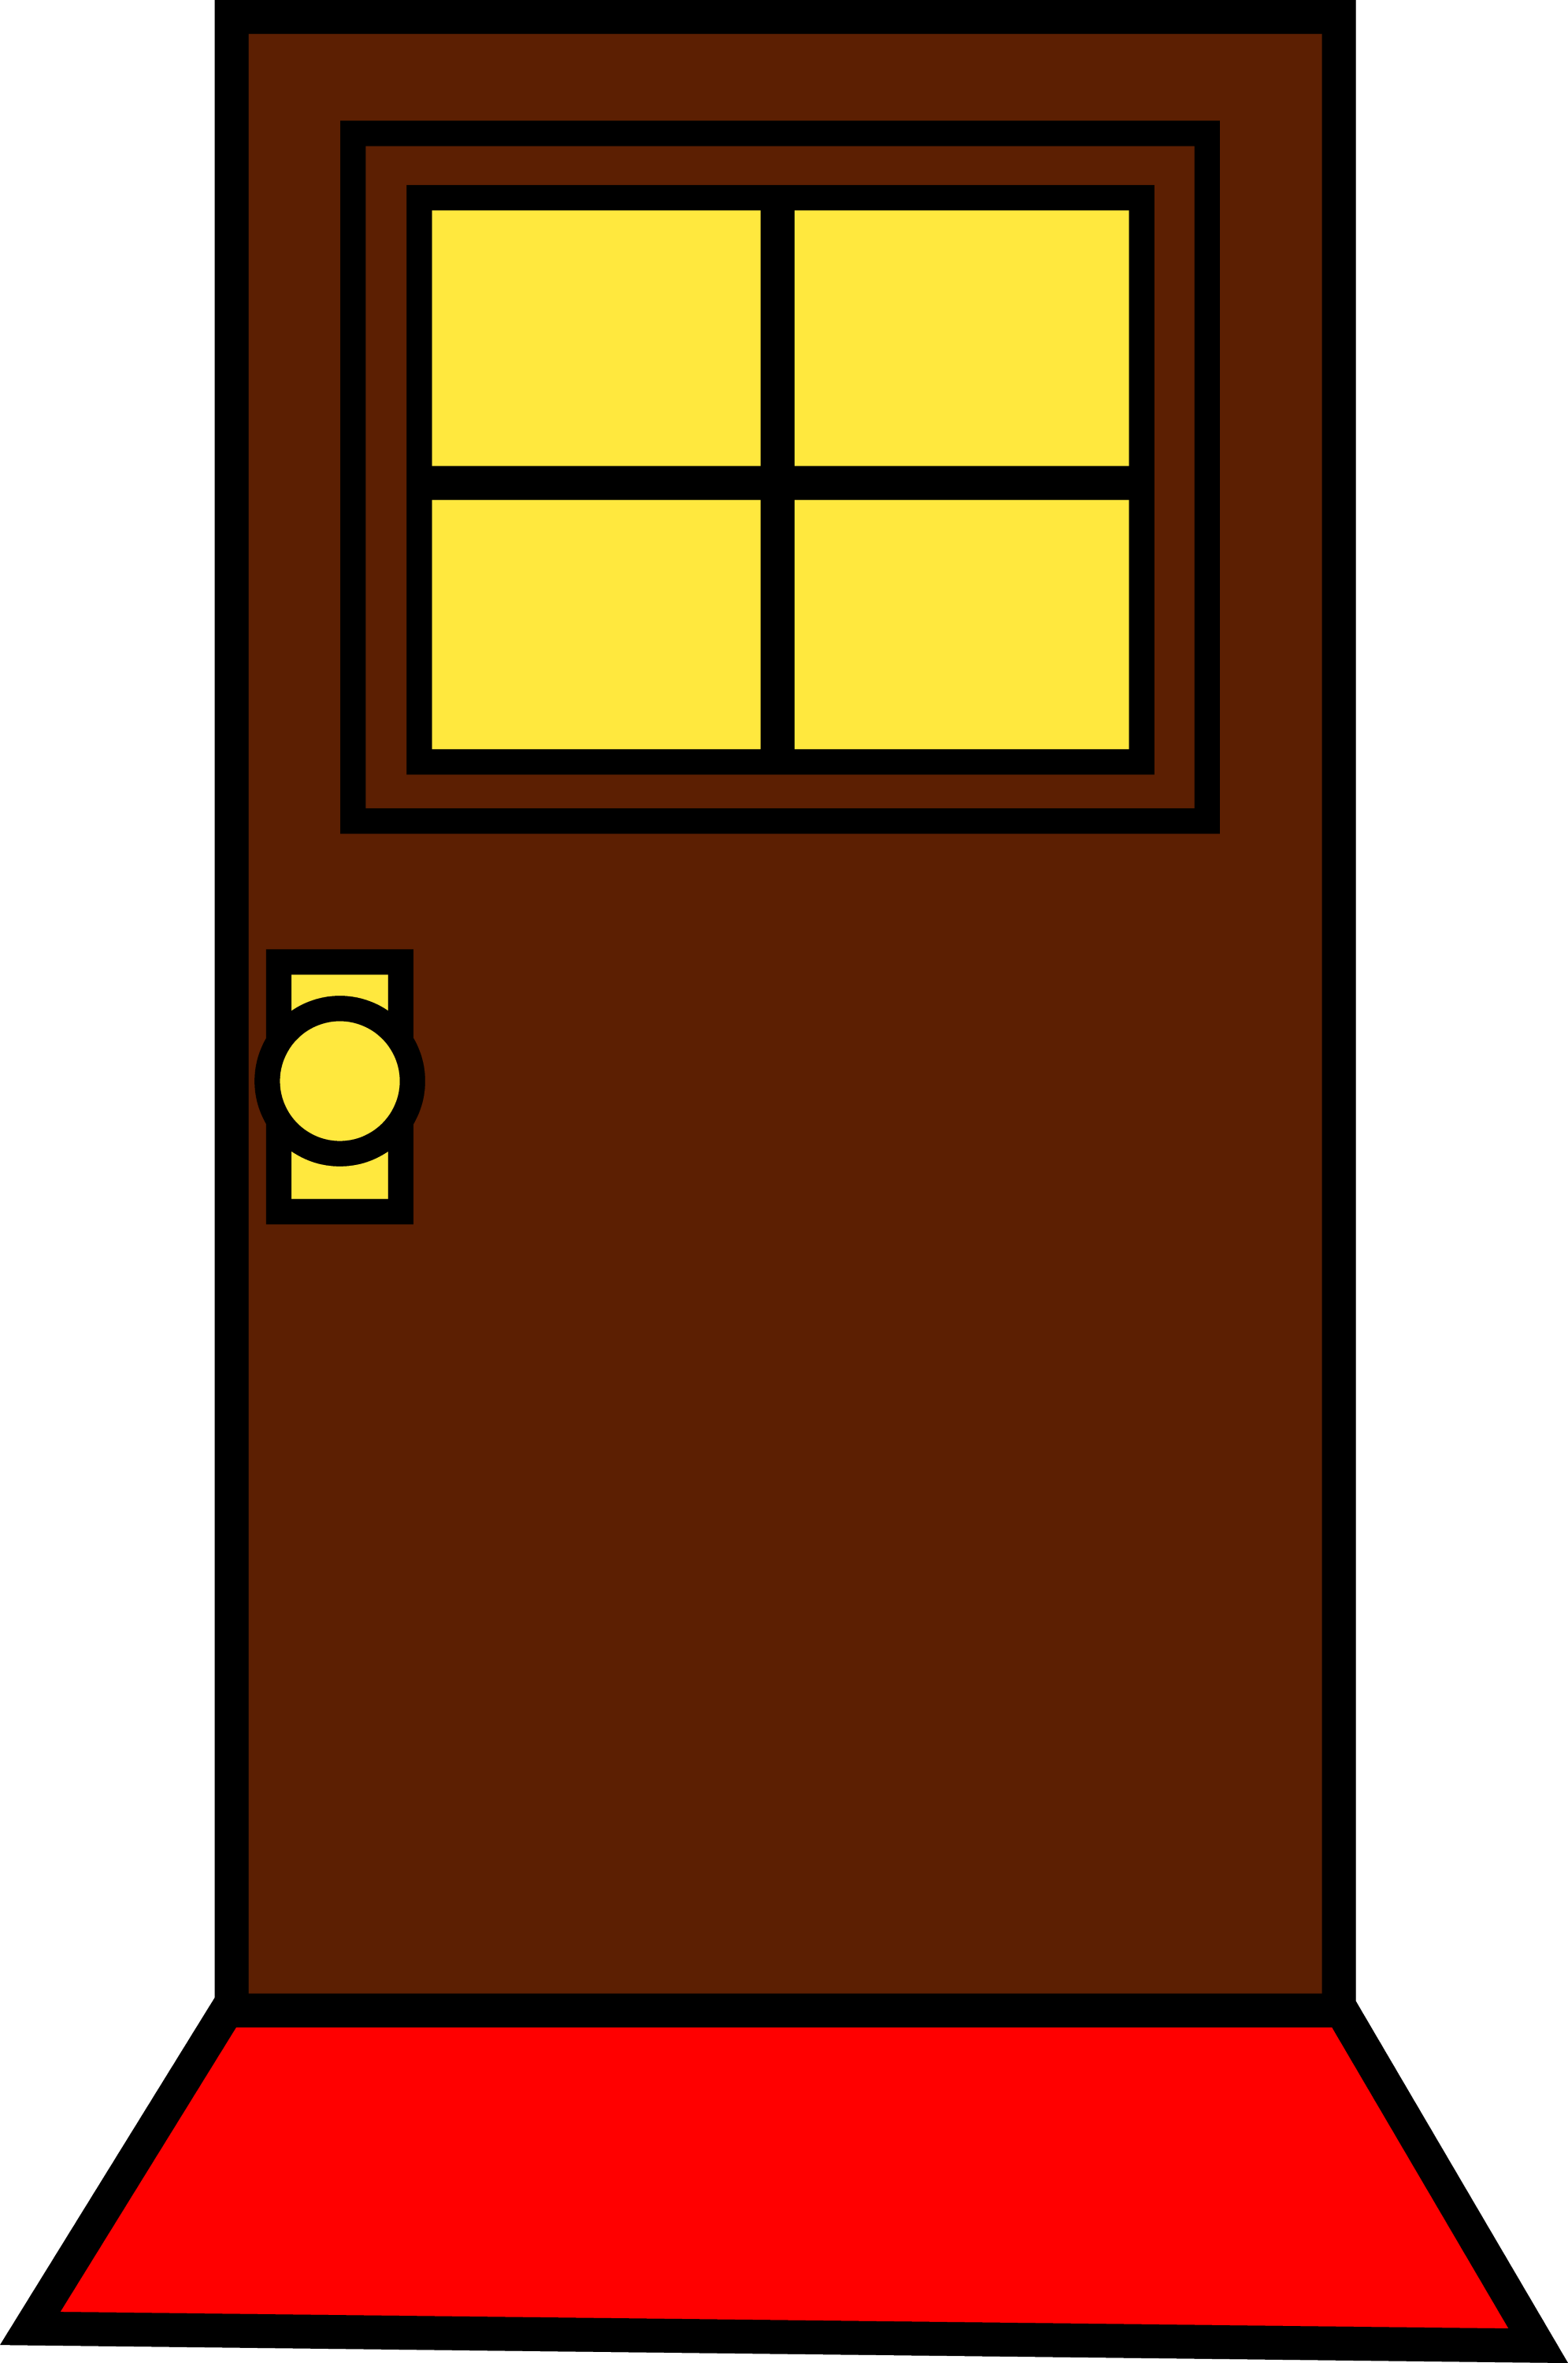 Door With Window and Doormat